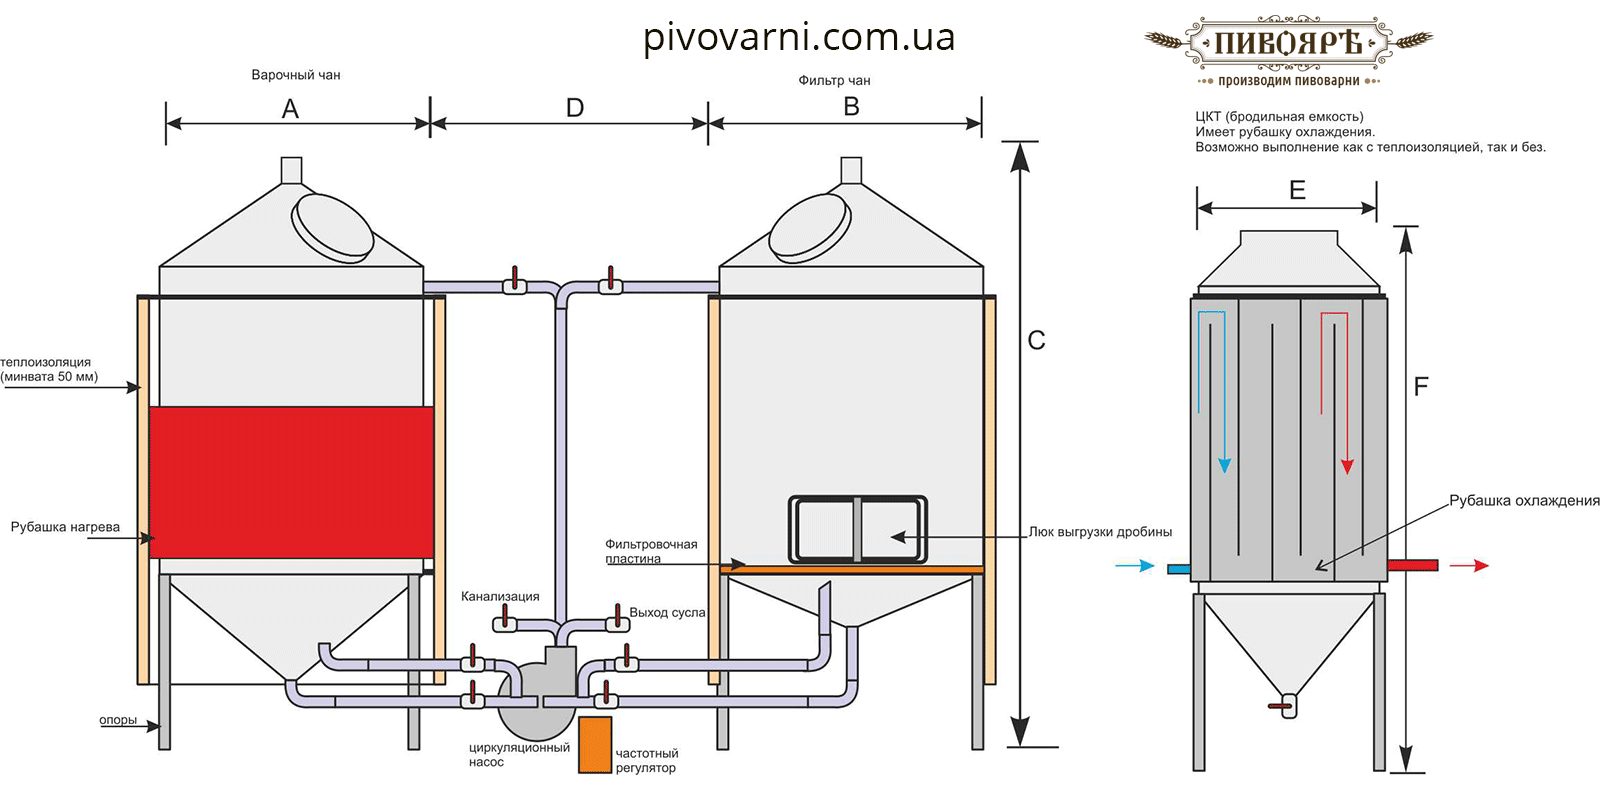 Mini-brewery for 200 liters for ale or craft beer production - Schematic diagram of the brewery